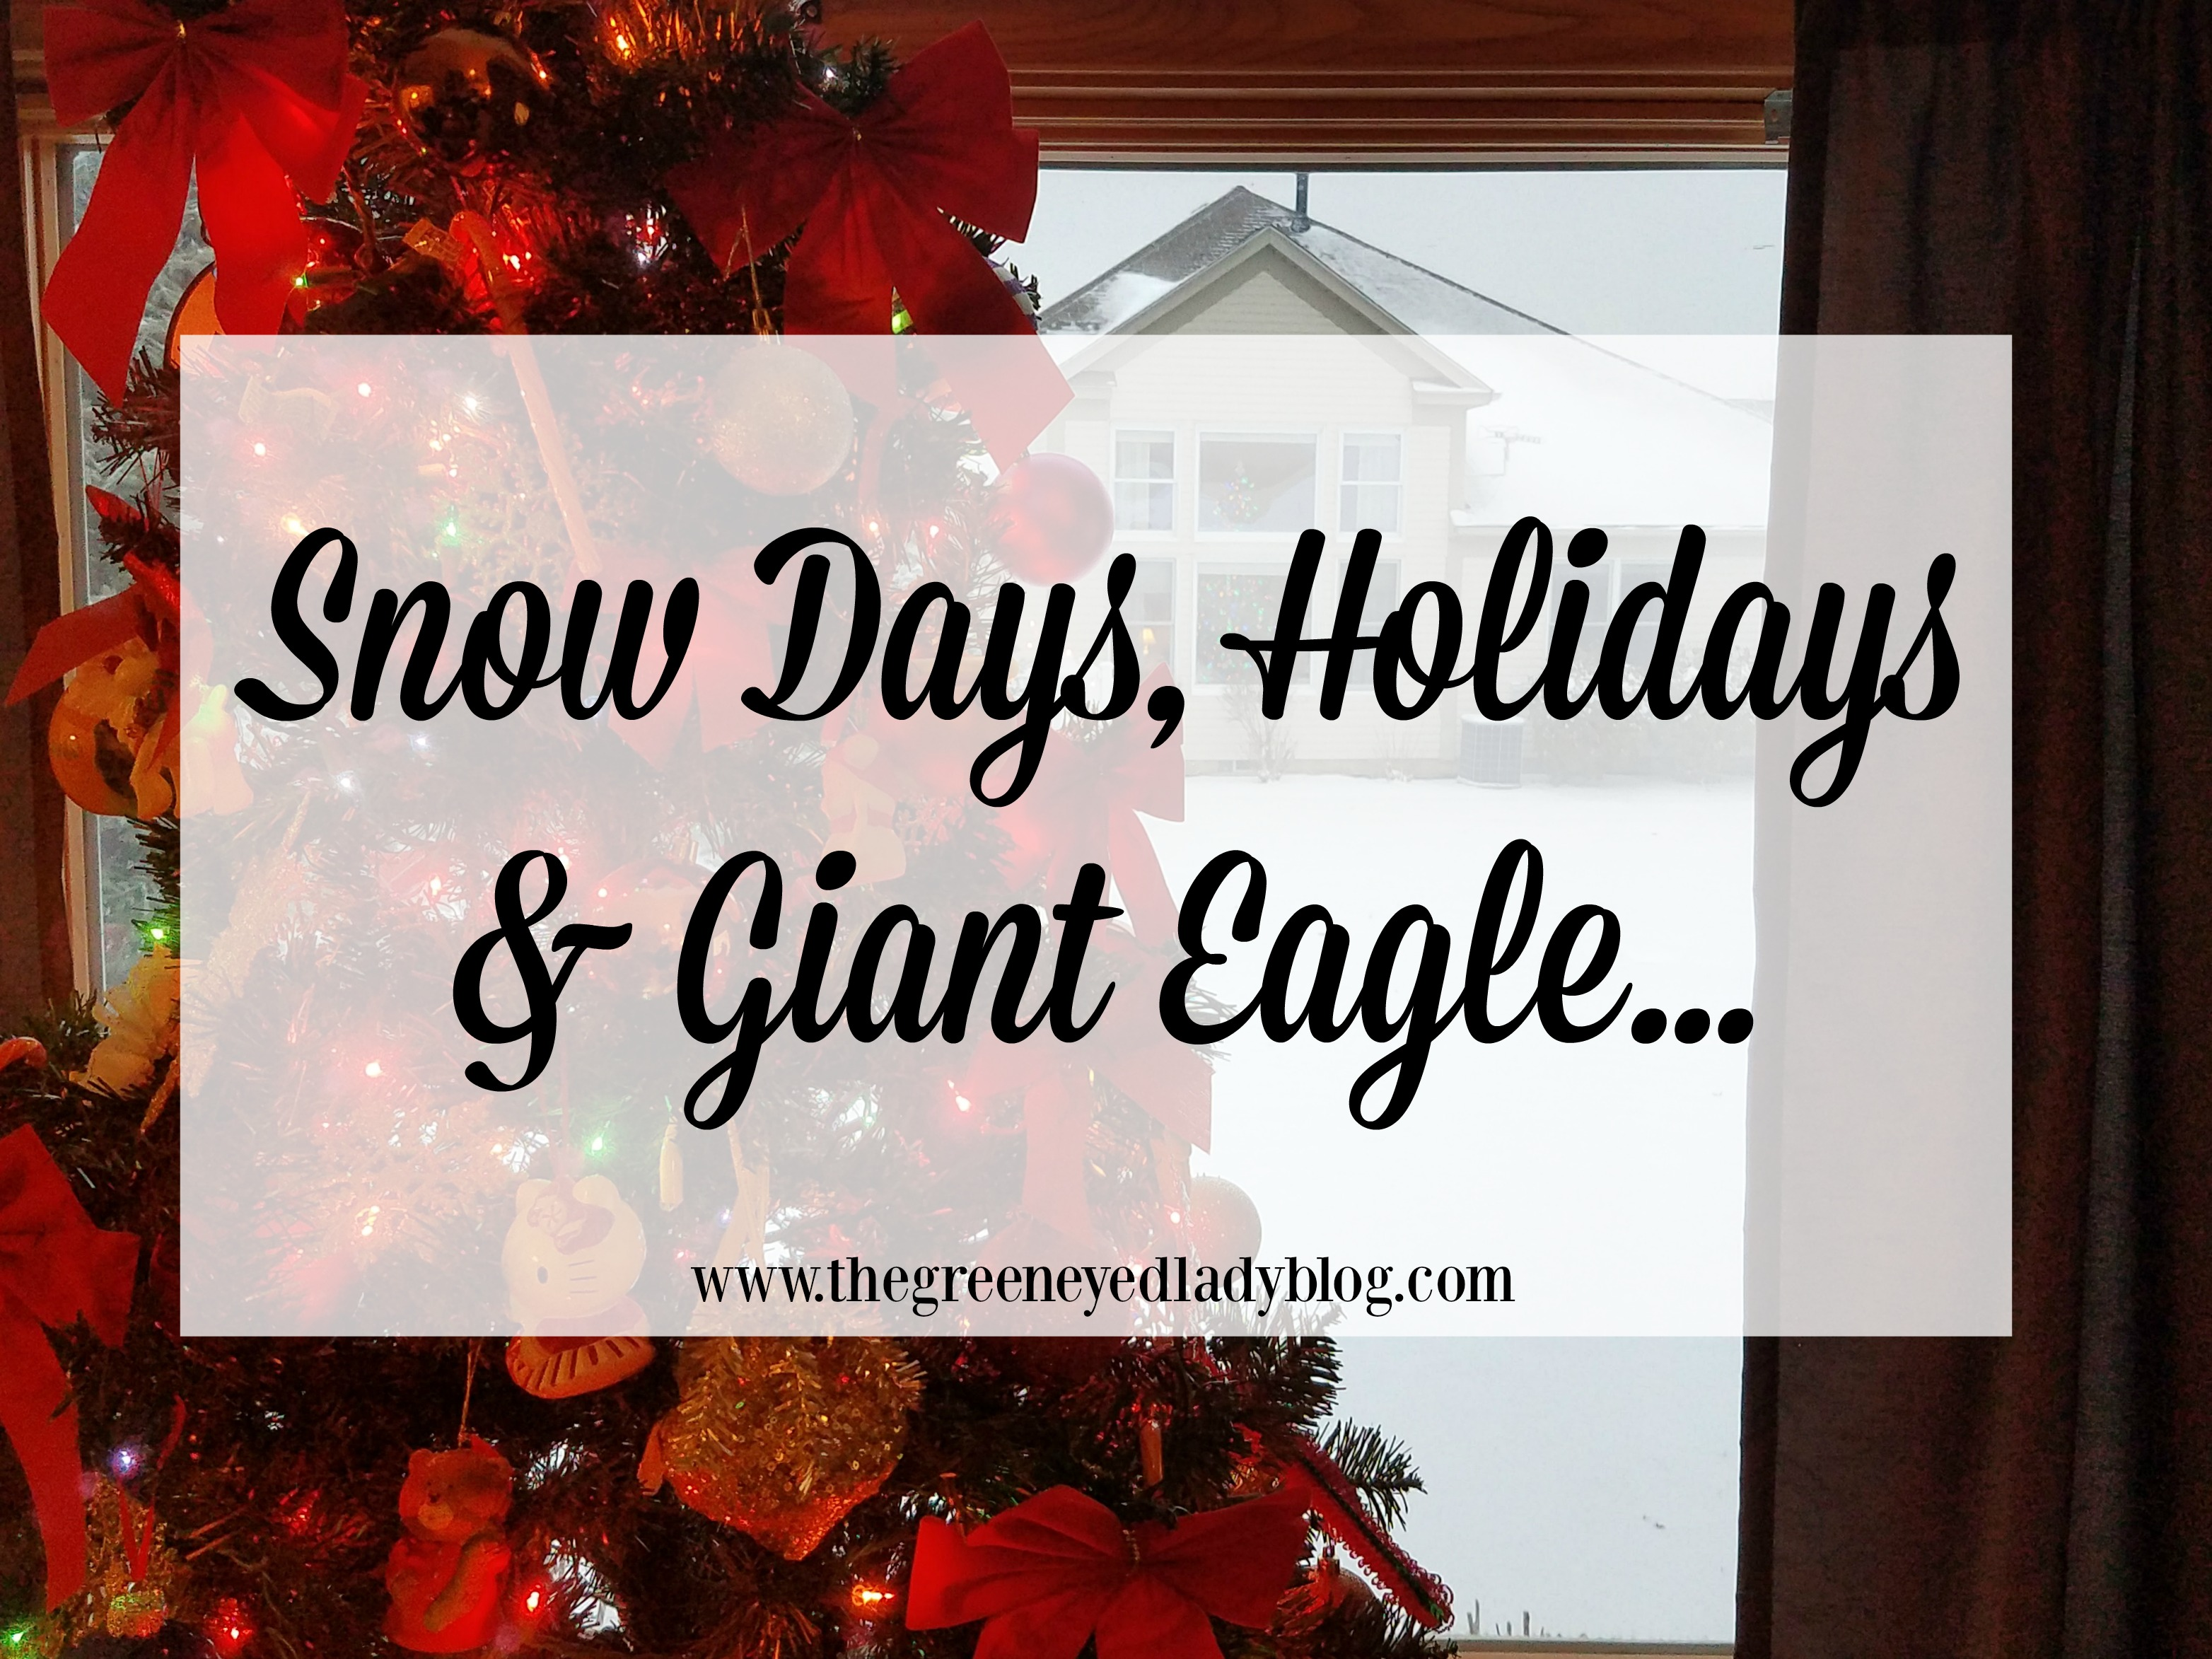 here in cleveland snow and holidays go hand in hand getting your house prepped for the holidays and keeping your house stocked during the cold weather is - Giant Eagle Christmas Hours